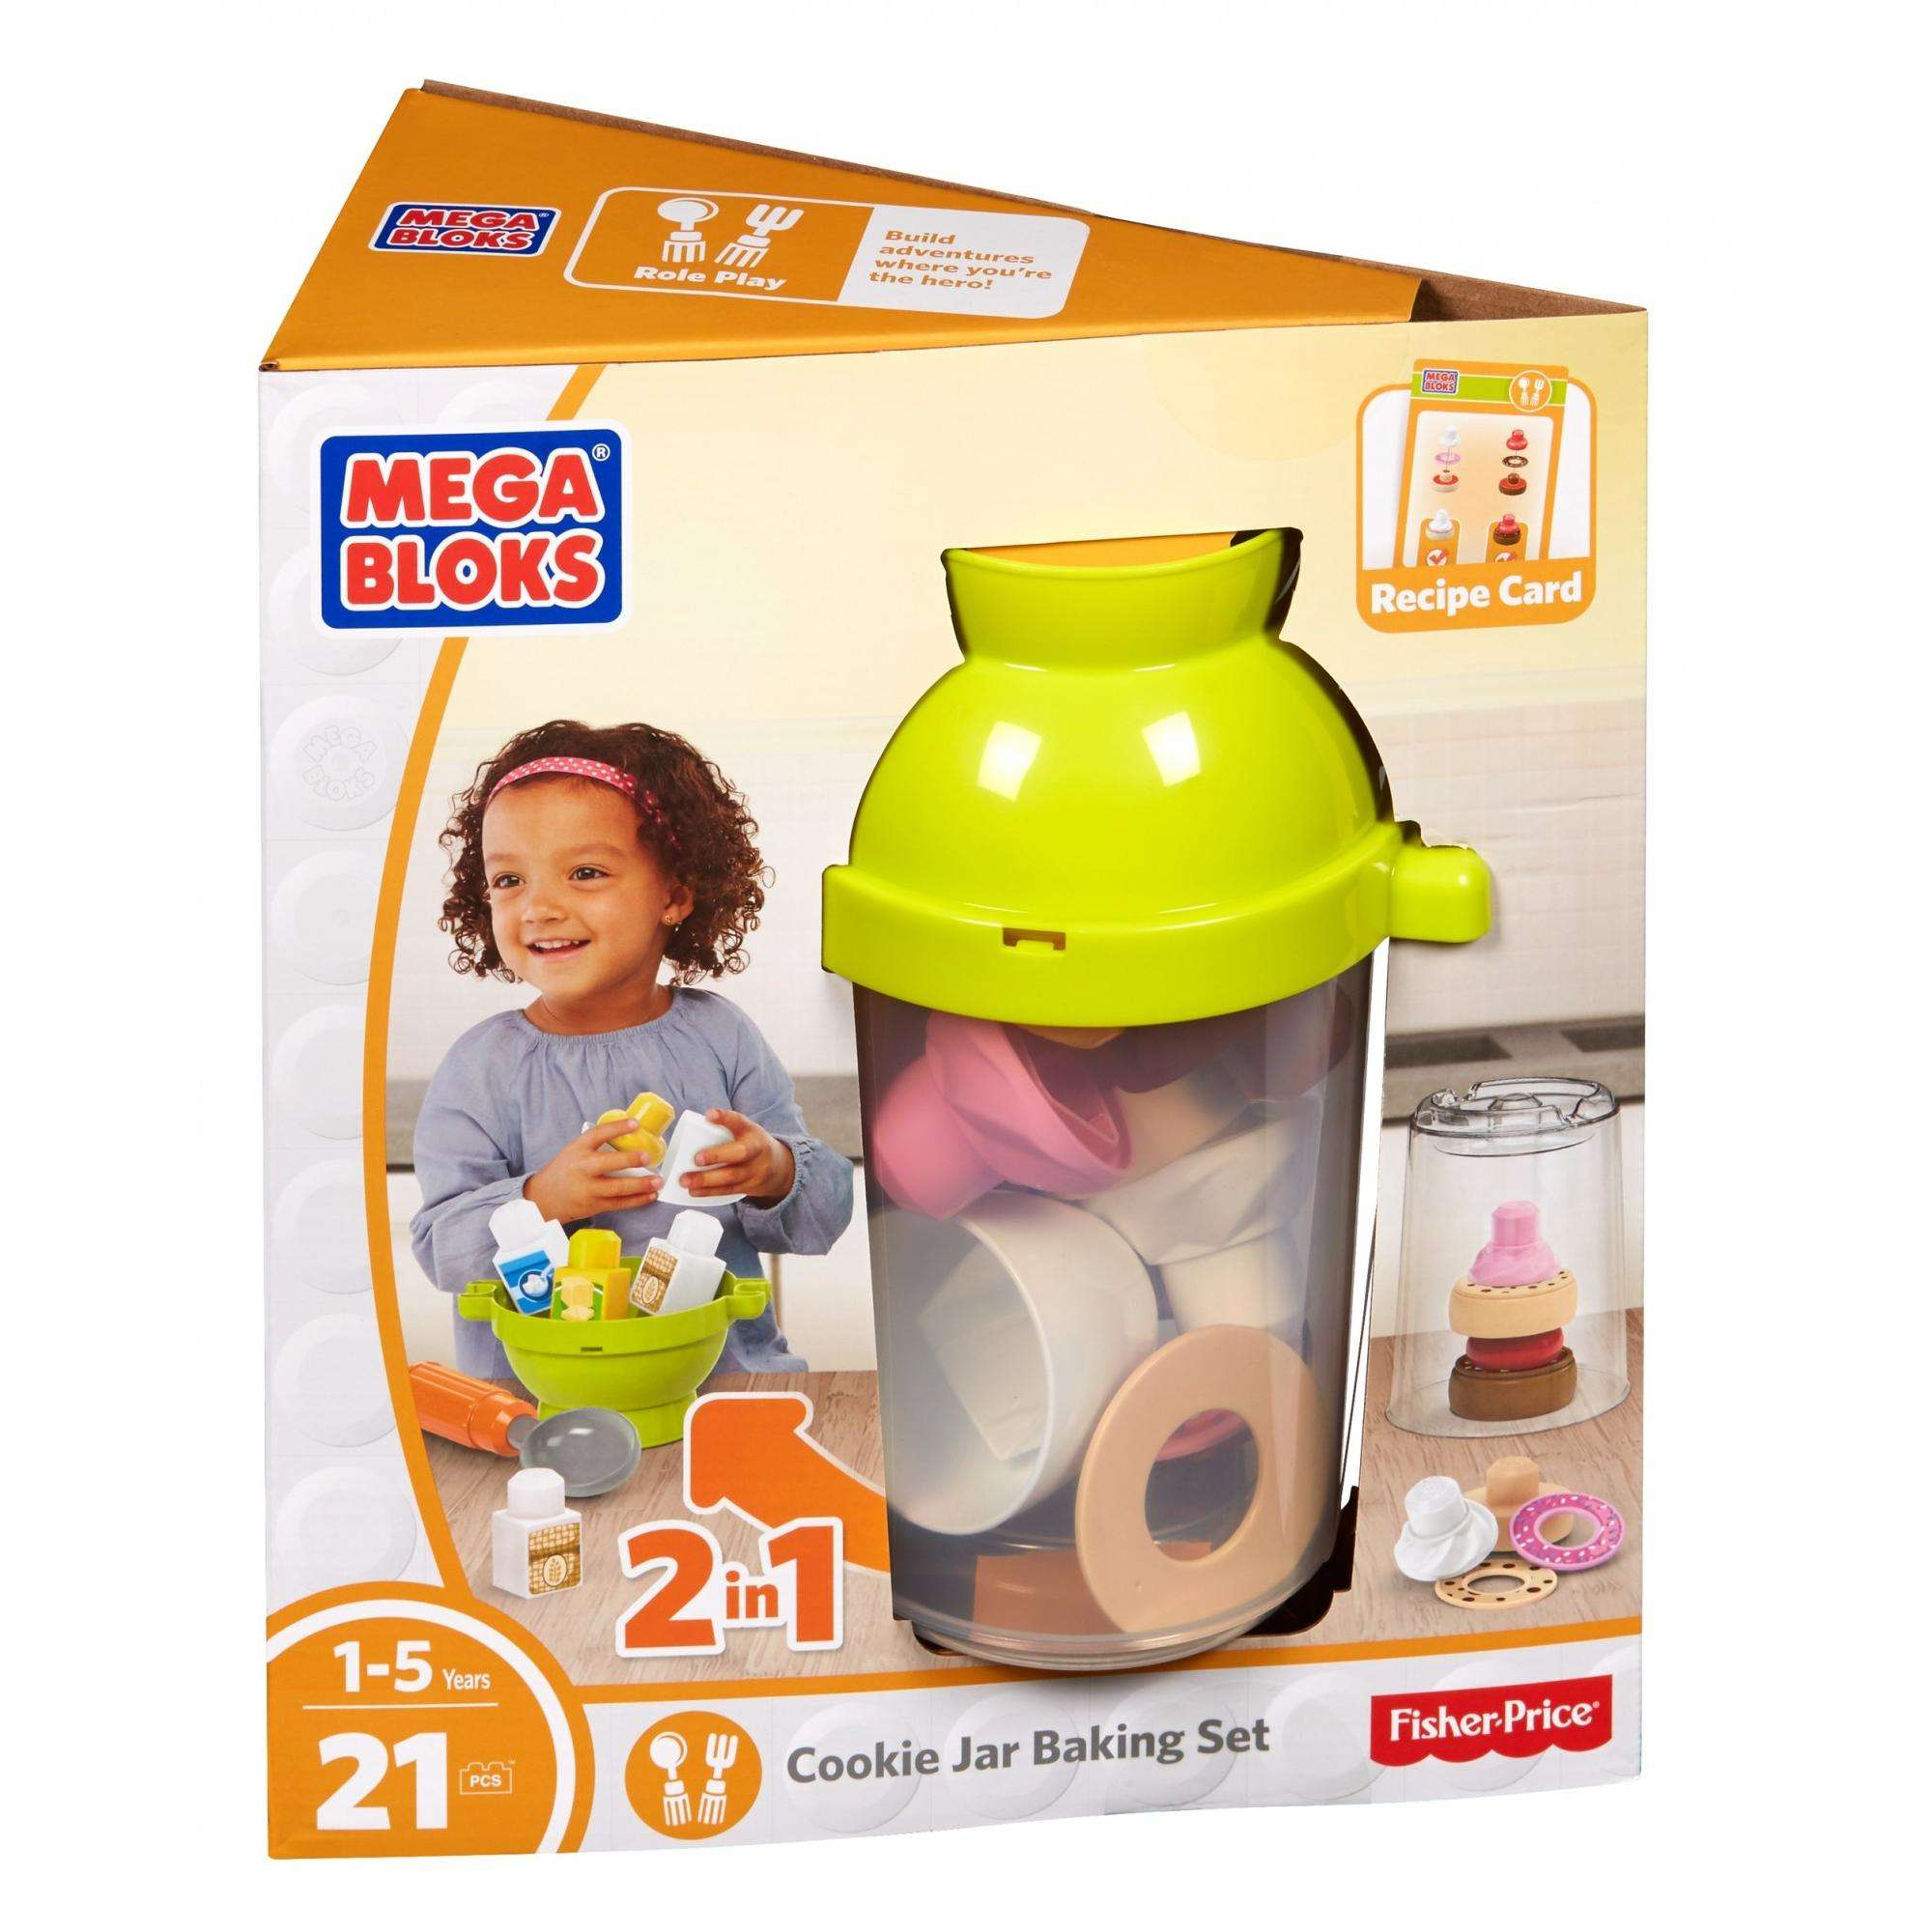 Mega Bloks Cookie Jar Baking Set